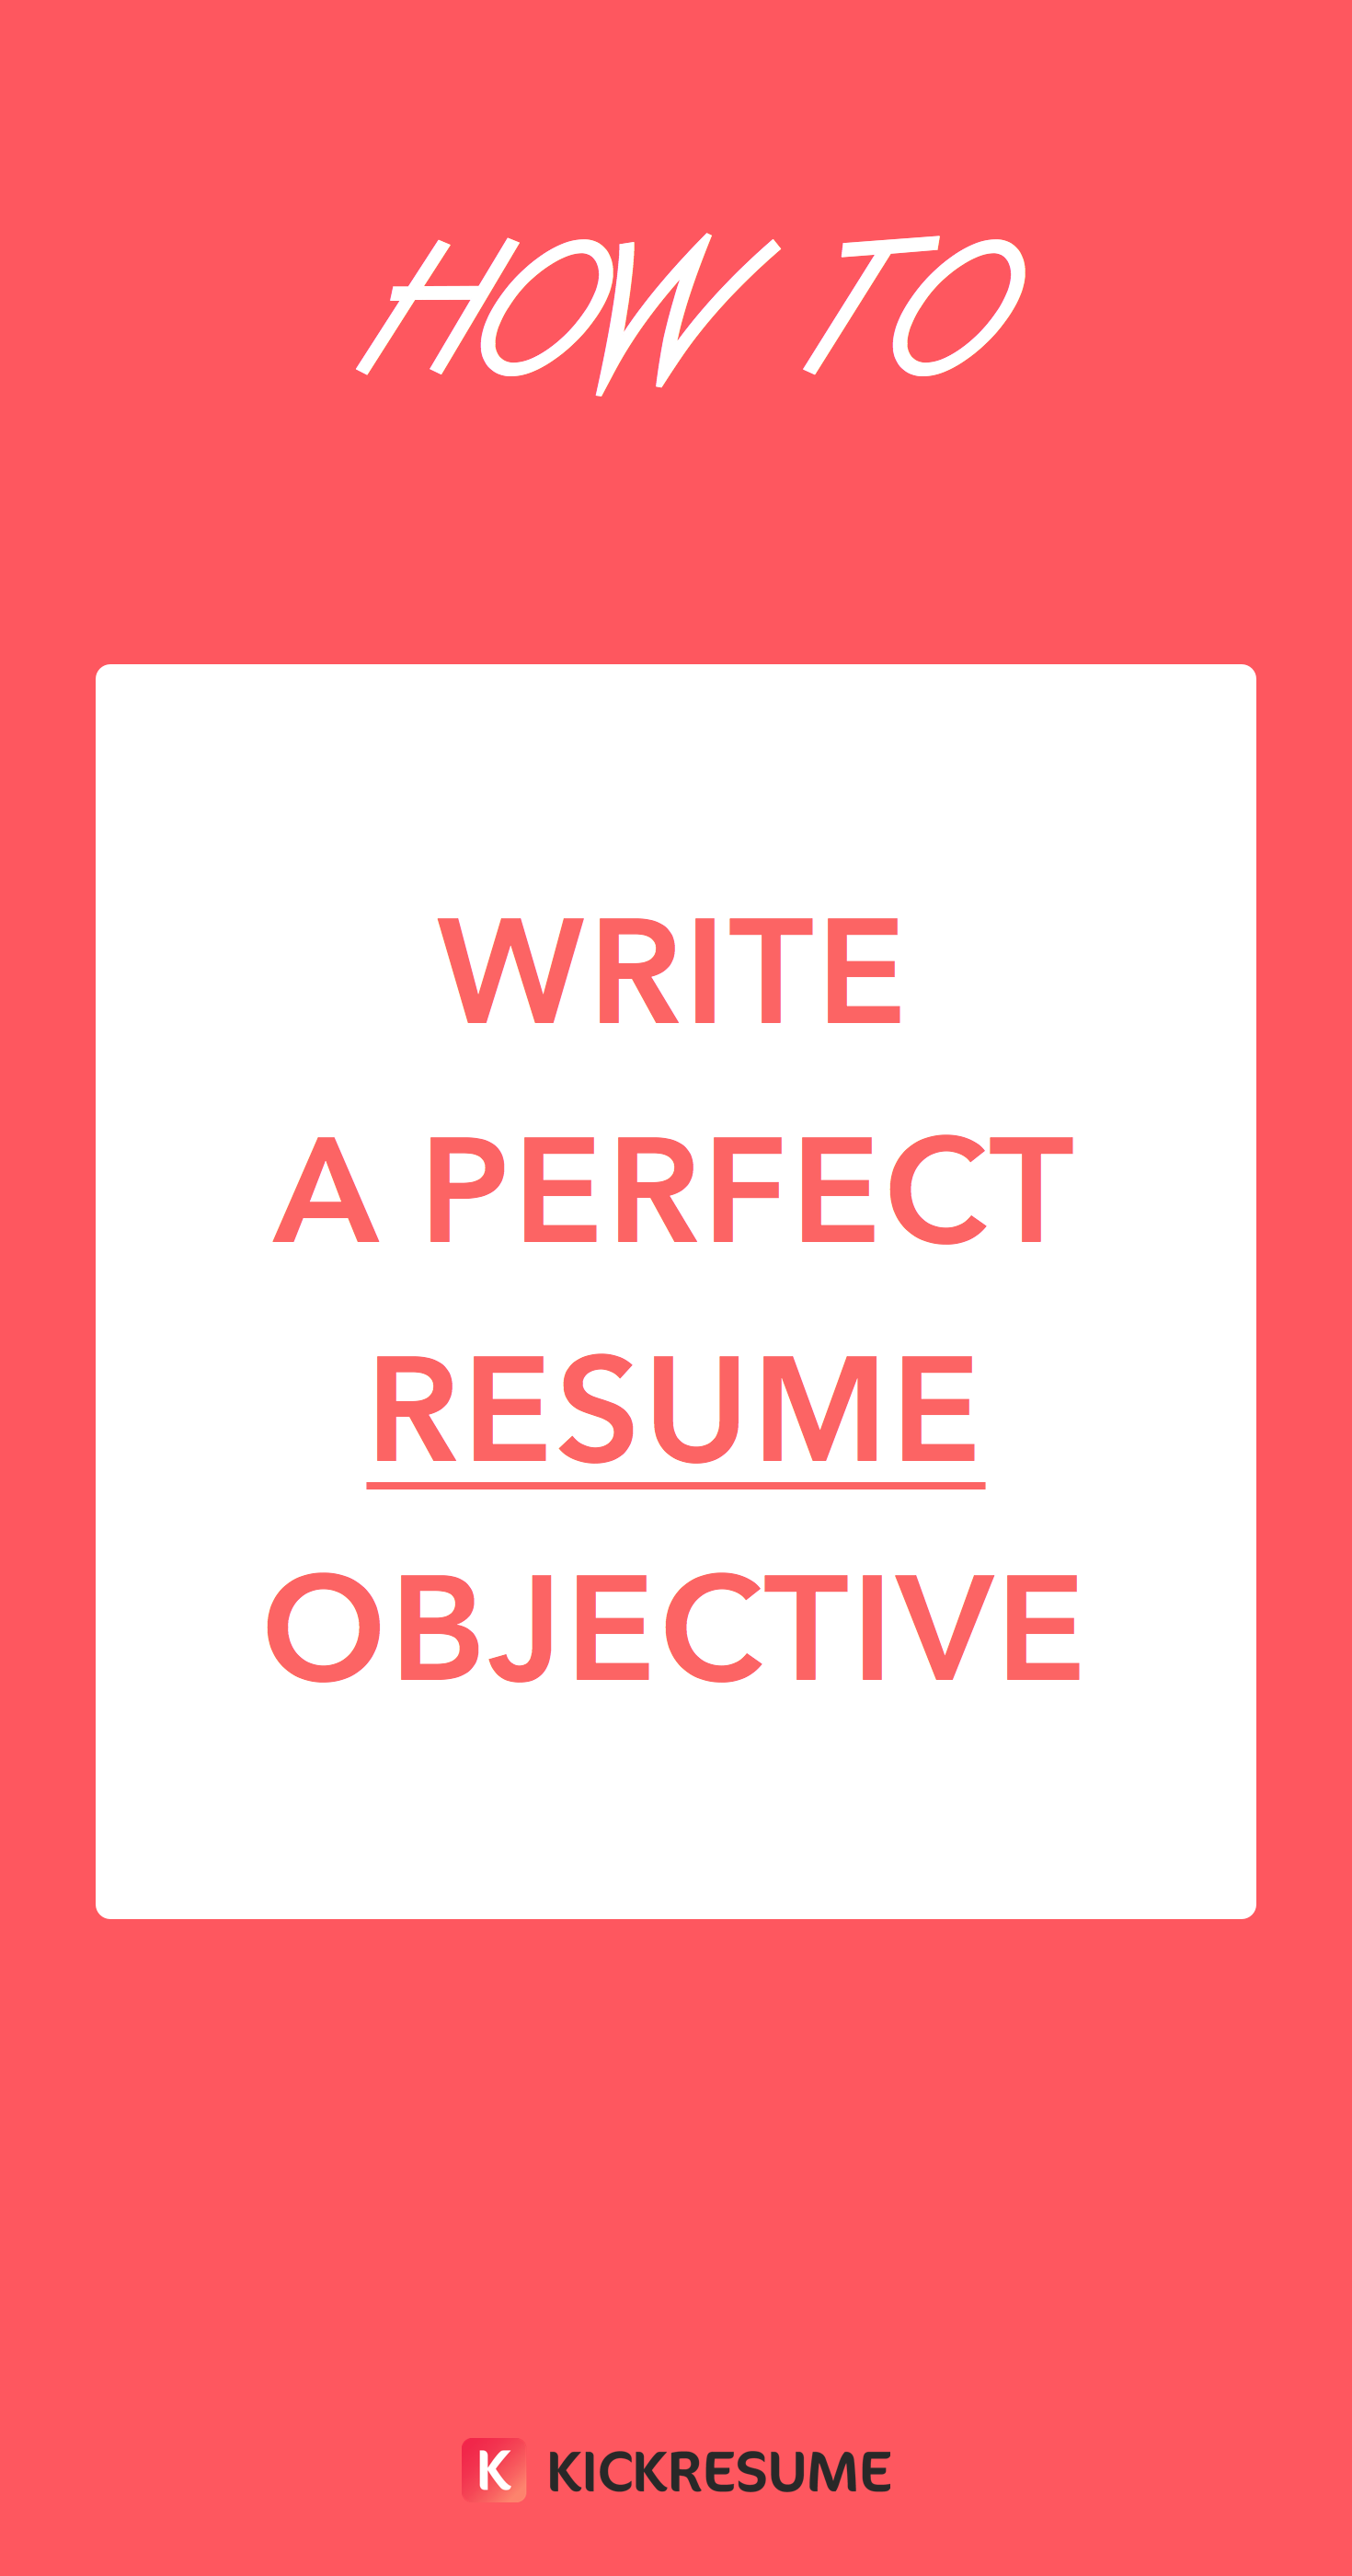 Tips For A Perfect Resume How To Write A Perfect Resume Objective Examples Included